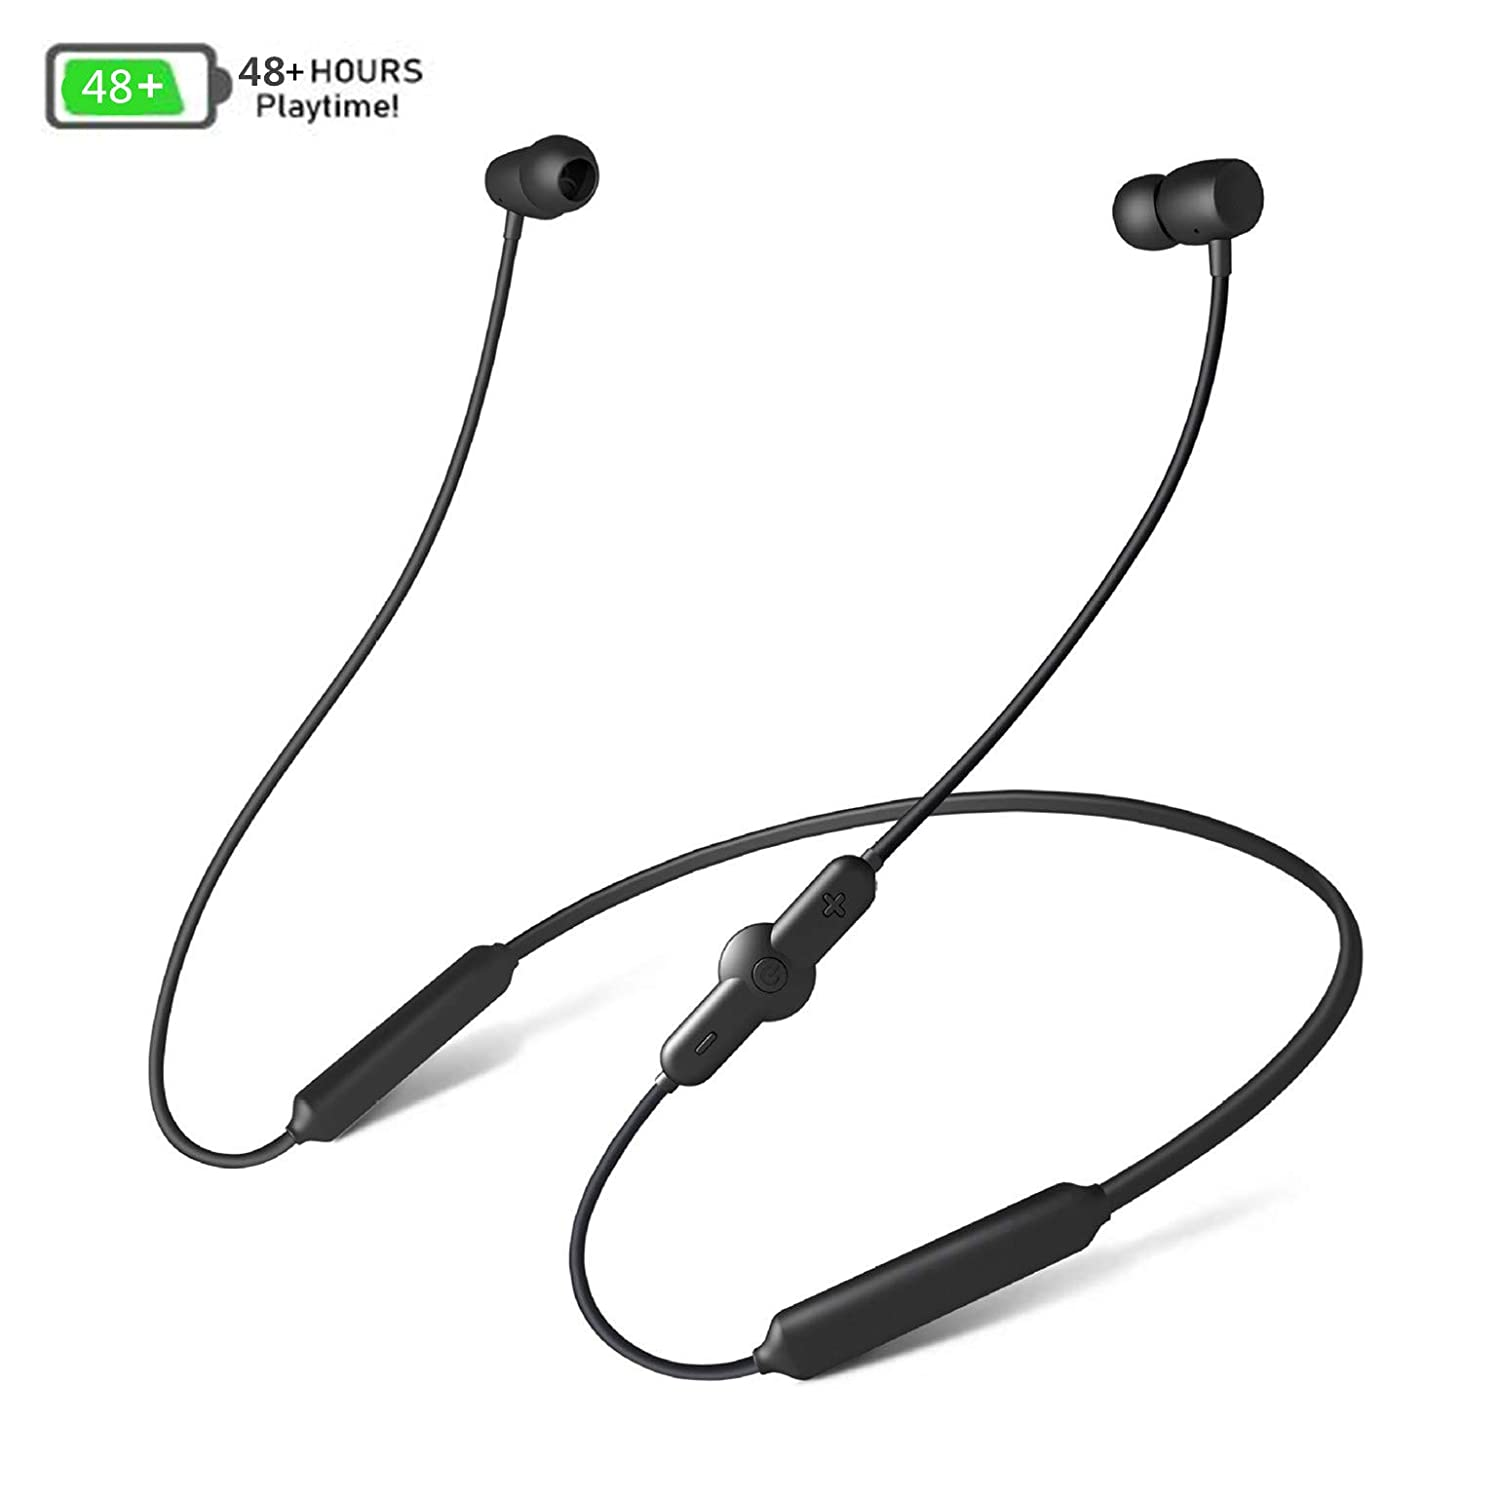 Bluetooth Headphones, AMTERBEST Magnetic Earbuds Wireless Sports V4.2 Earphones with Mic, IPX5 Waterproof, HD HiFi Stereo Sound with Bass, Noise Cancelling headsets, up to 48 Hours Working time